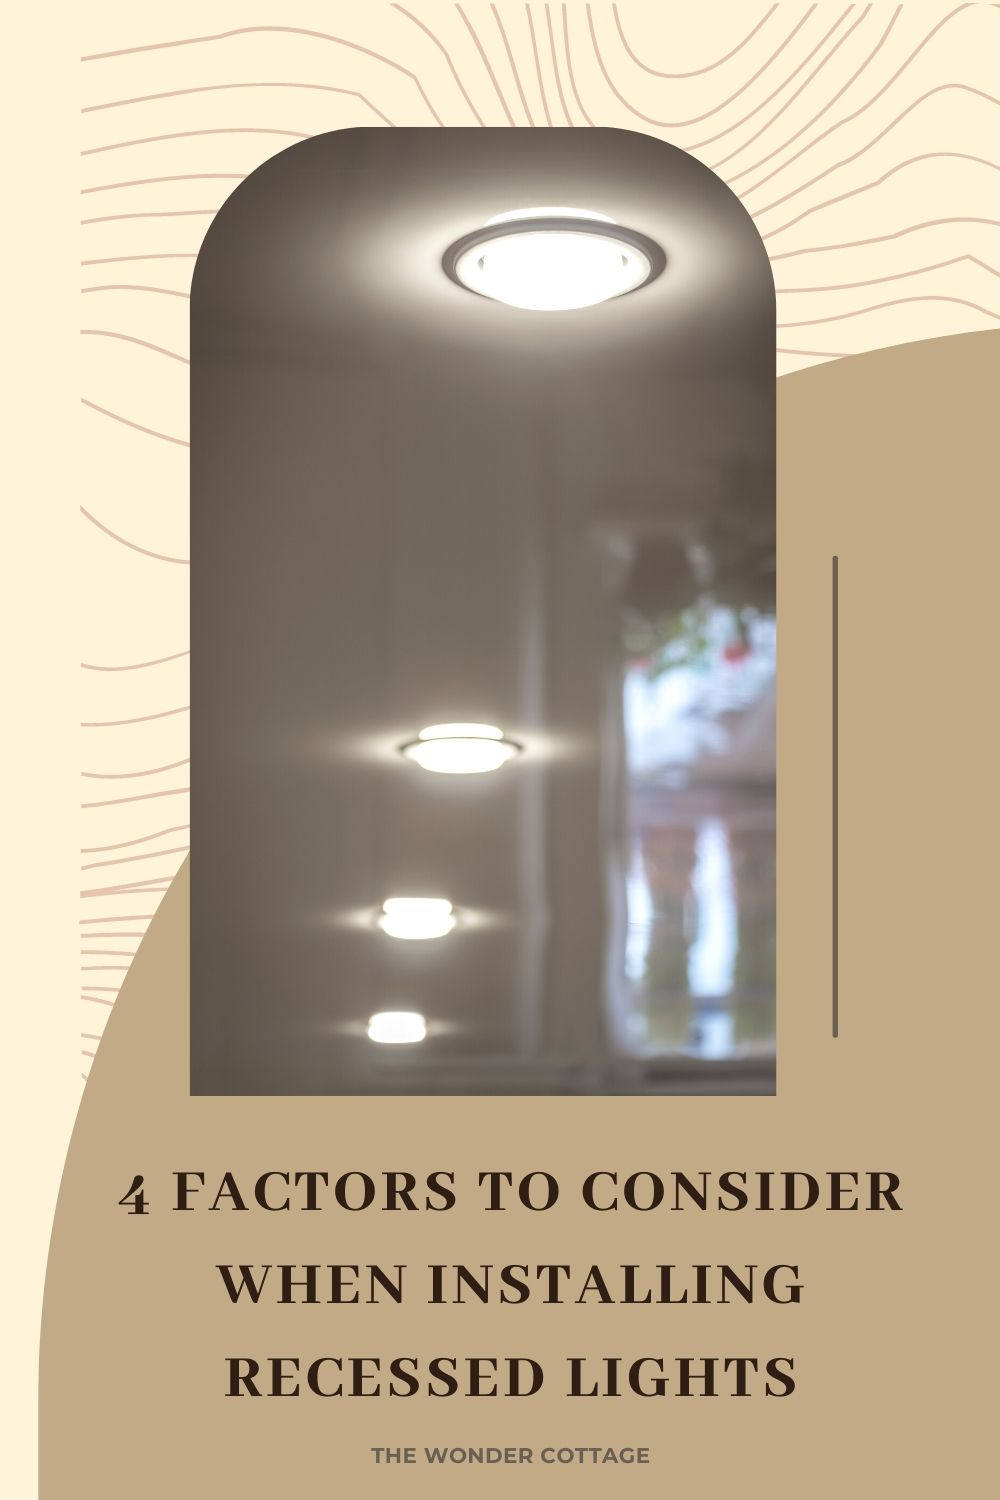 4 factors to consider when installing recessed lights